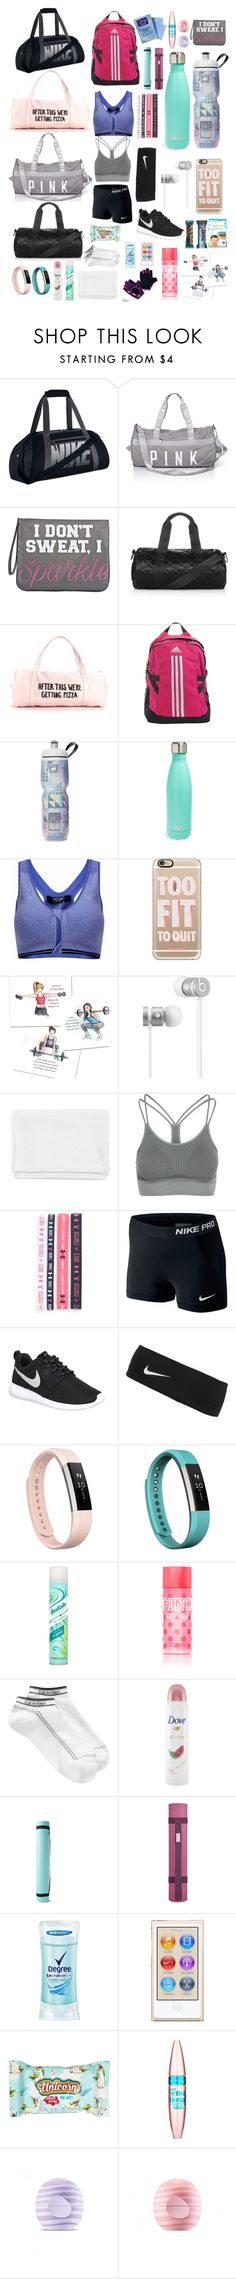 Gym Bag Essentials by ale-needam on Polyvore featuring NIKE, Zensah, Calvin Klein, adidas, Topshop, City Streets, Fitbit, Casetify, Under Armour and Beats by Dr. Dre